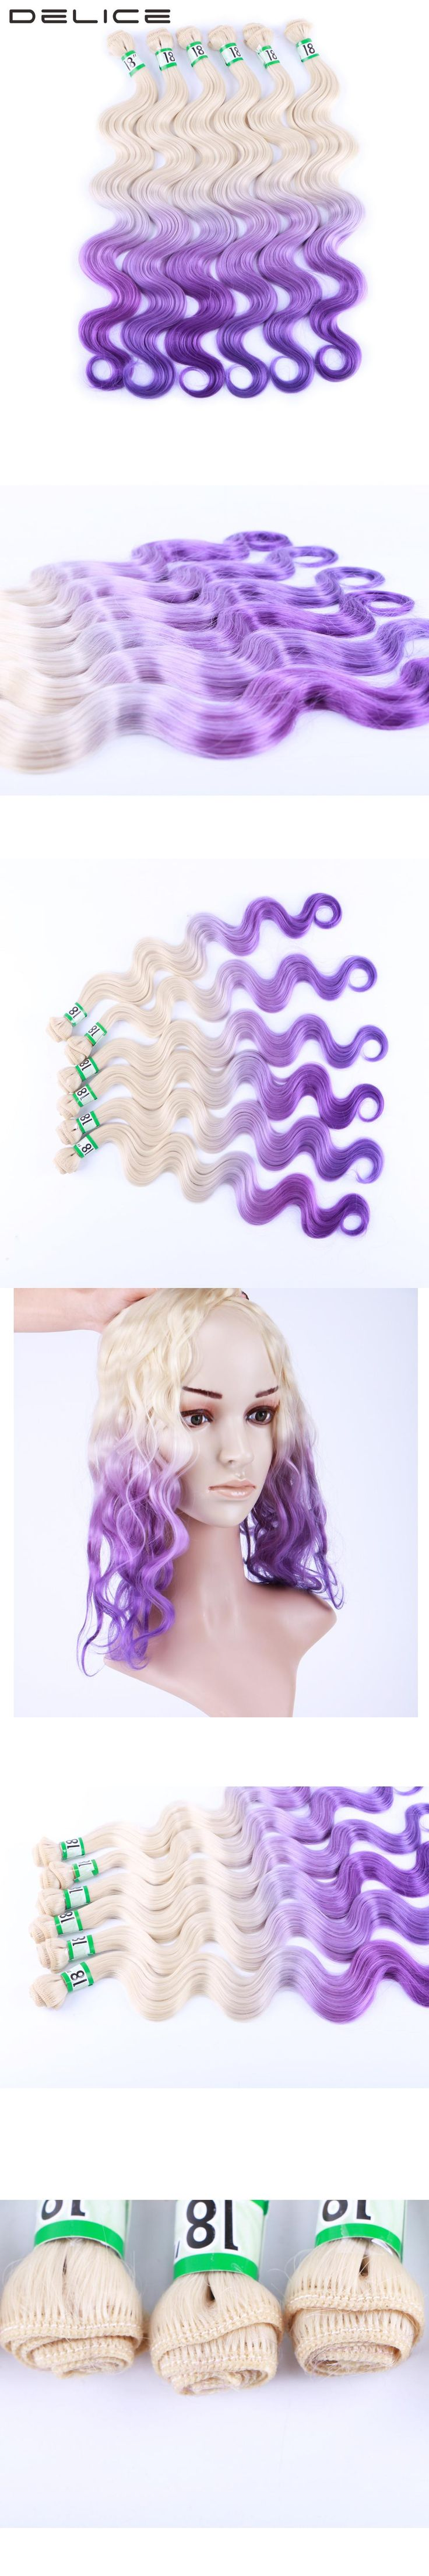 DELICE 6pcs/pack 18inch Blonde Purple Ombre Color Body Wave Hair Weaving Synthetic Hair Extensions Weft Bundles For Women